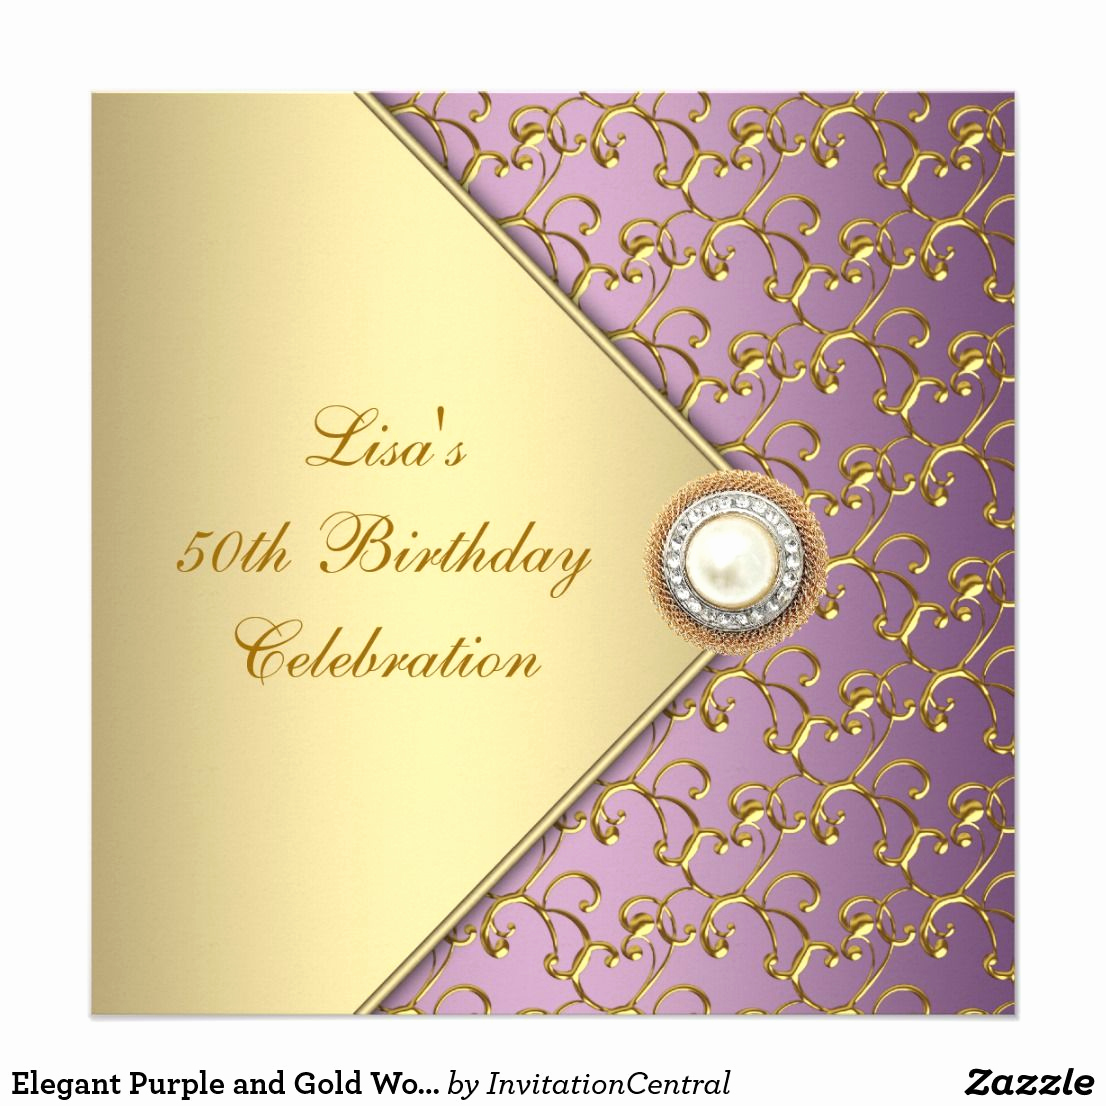 50th Birthday Invitation Card Unique Elegant Purple and Gold Womans 50th Birthday Party